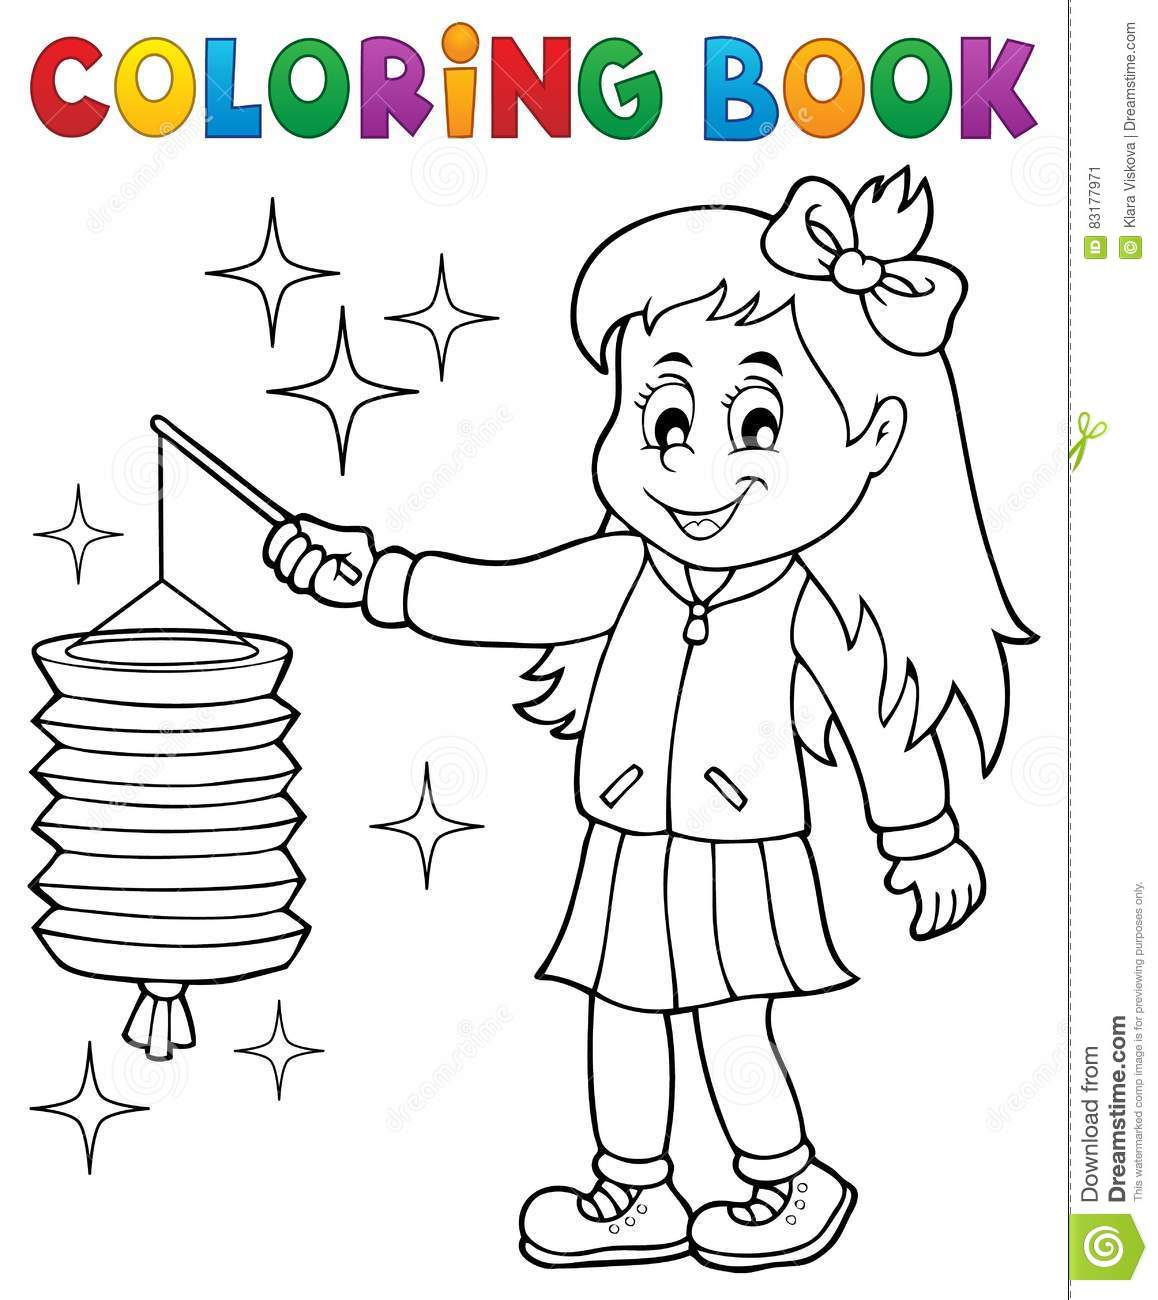 Fille de livre de coloriage avec le lampion illustration de vecteur illustration du dessin - Dessin lampion ...